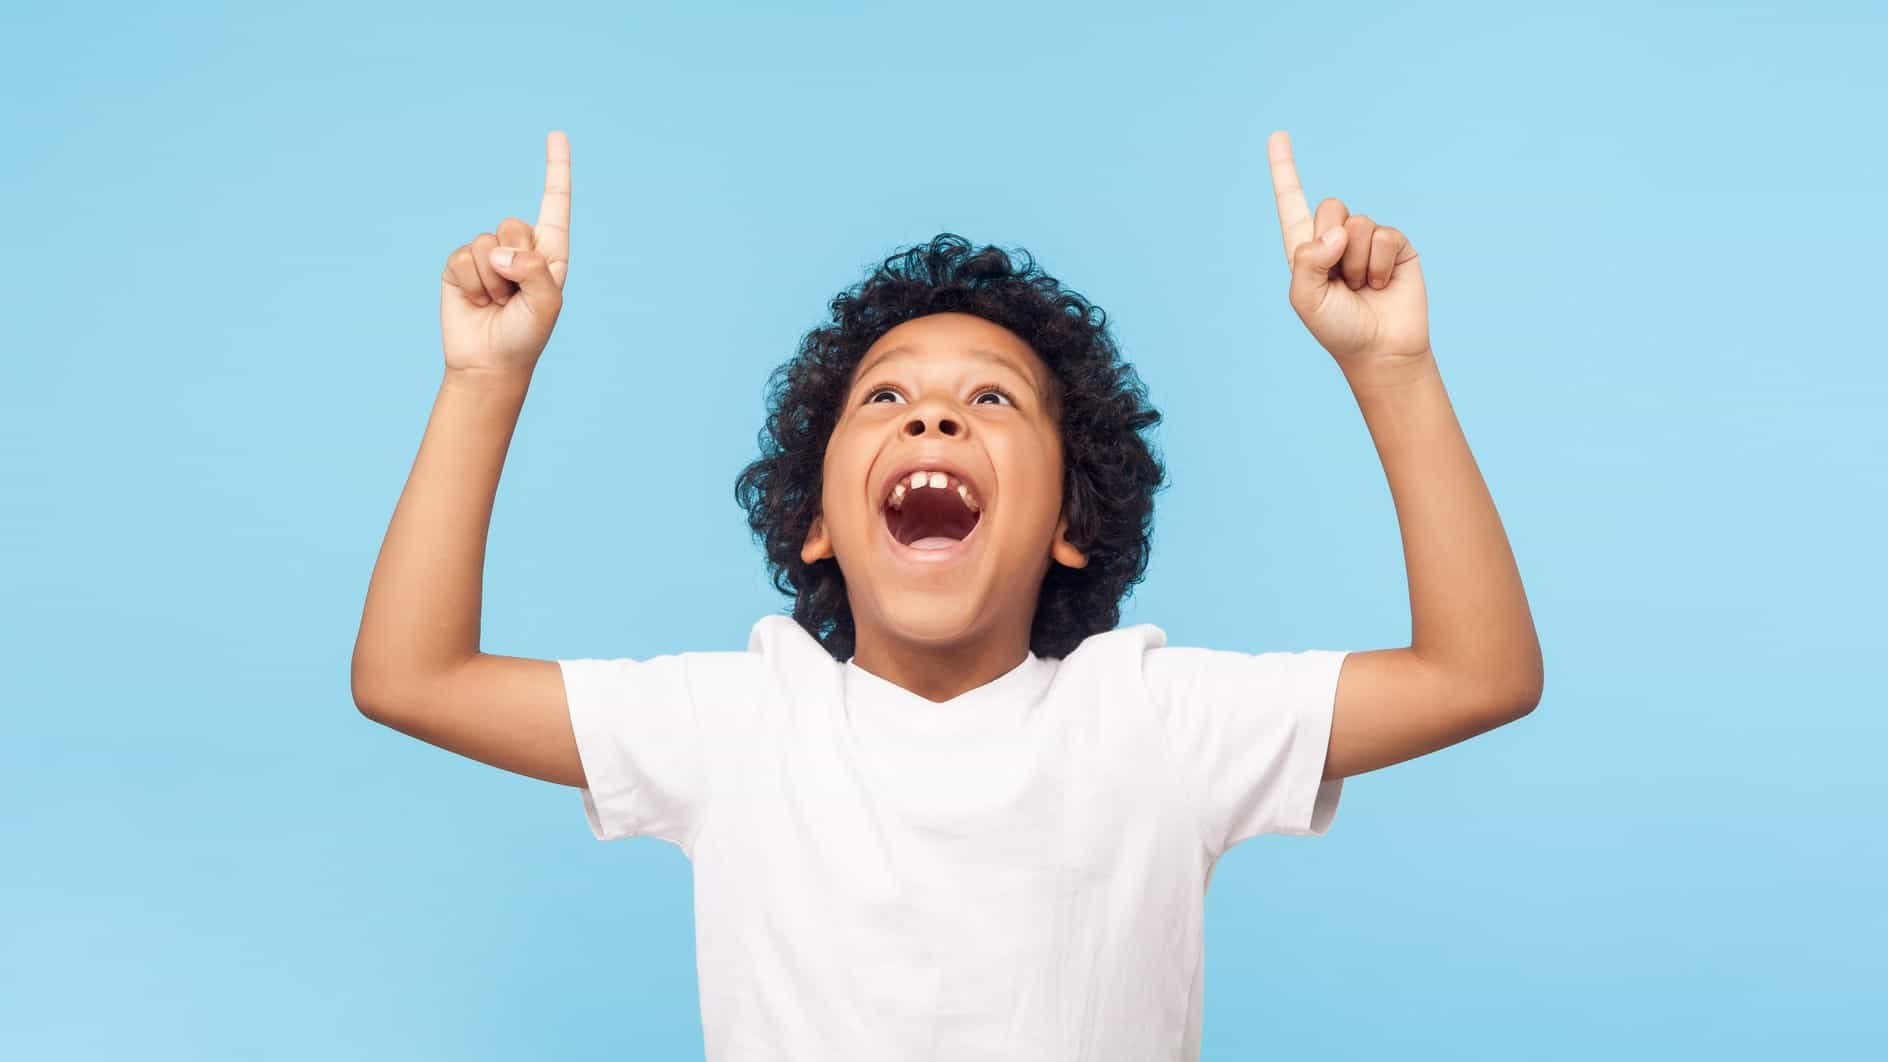 A happy smiling kid points his fingers up, indicating a rising share price